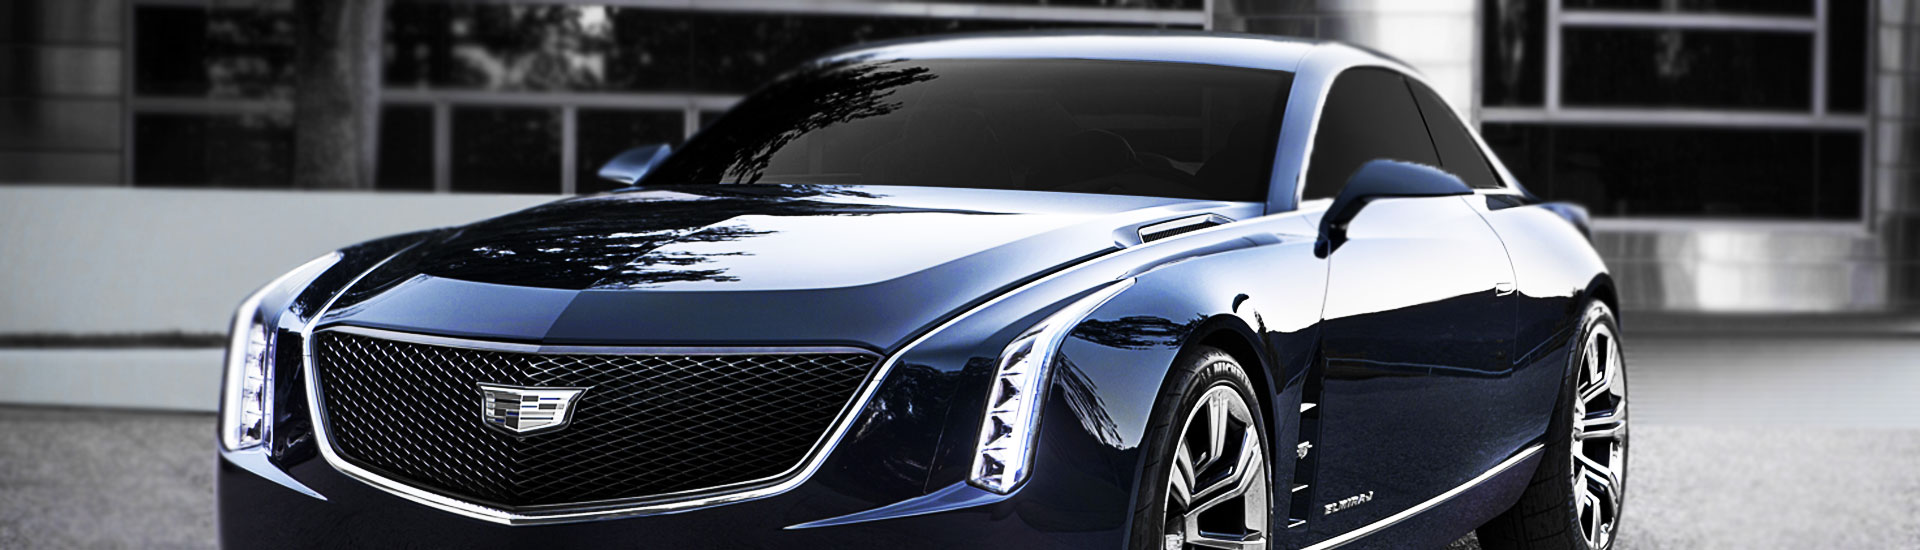 Cadillac Window Tint Kit | DIY Precut Cadillac Window Tint